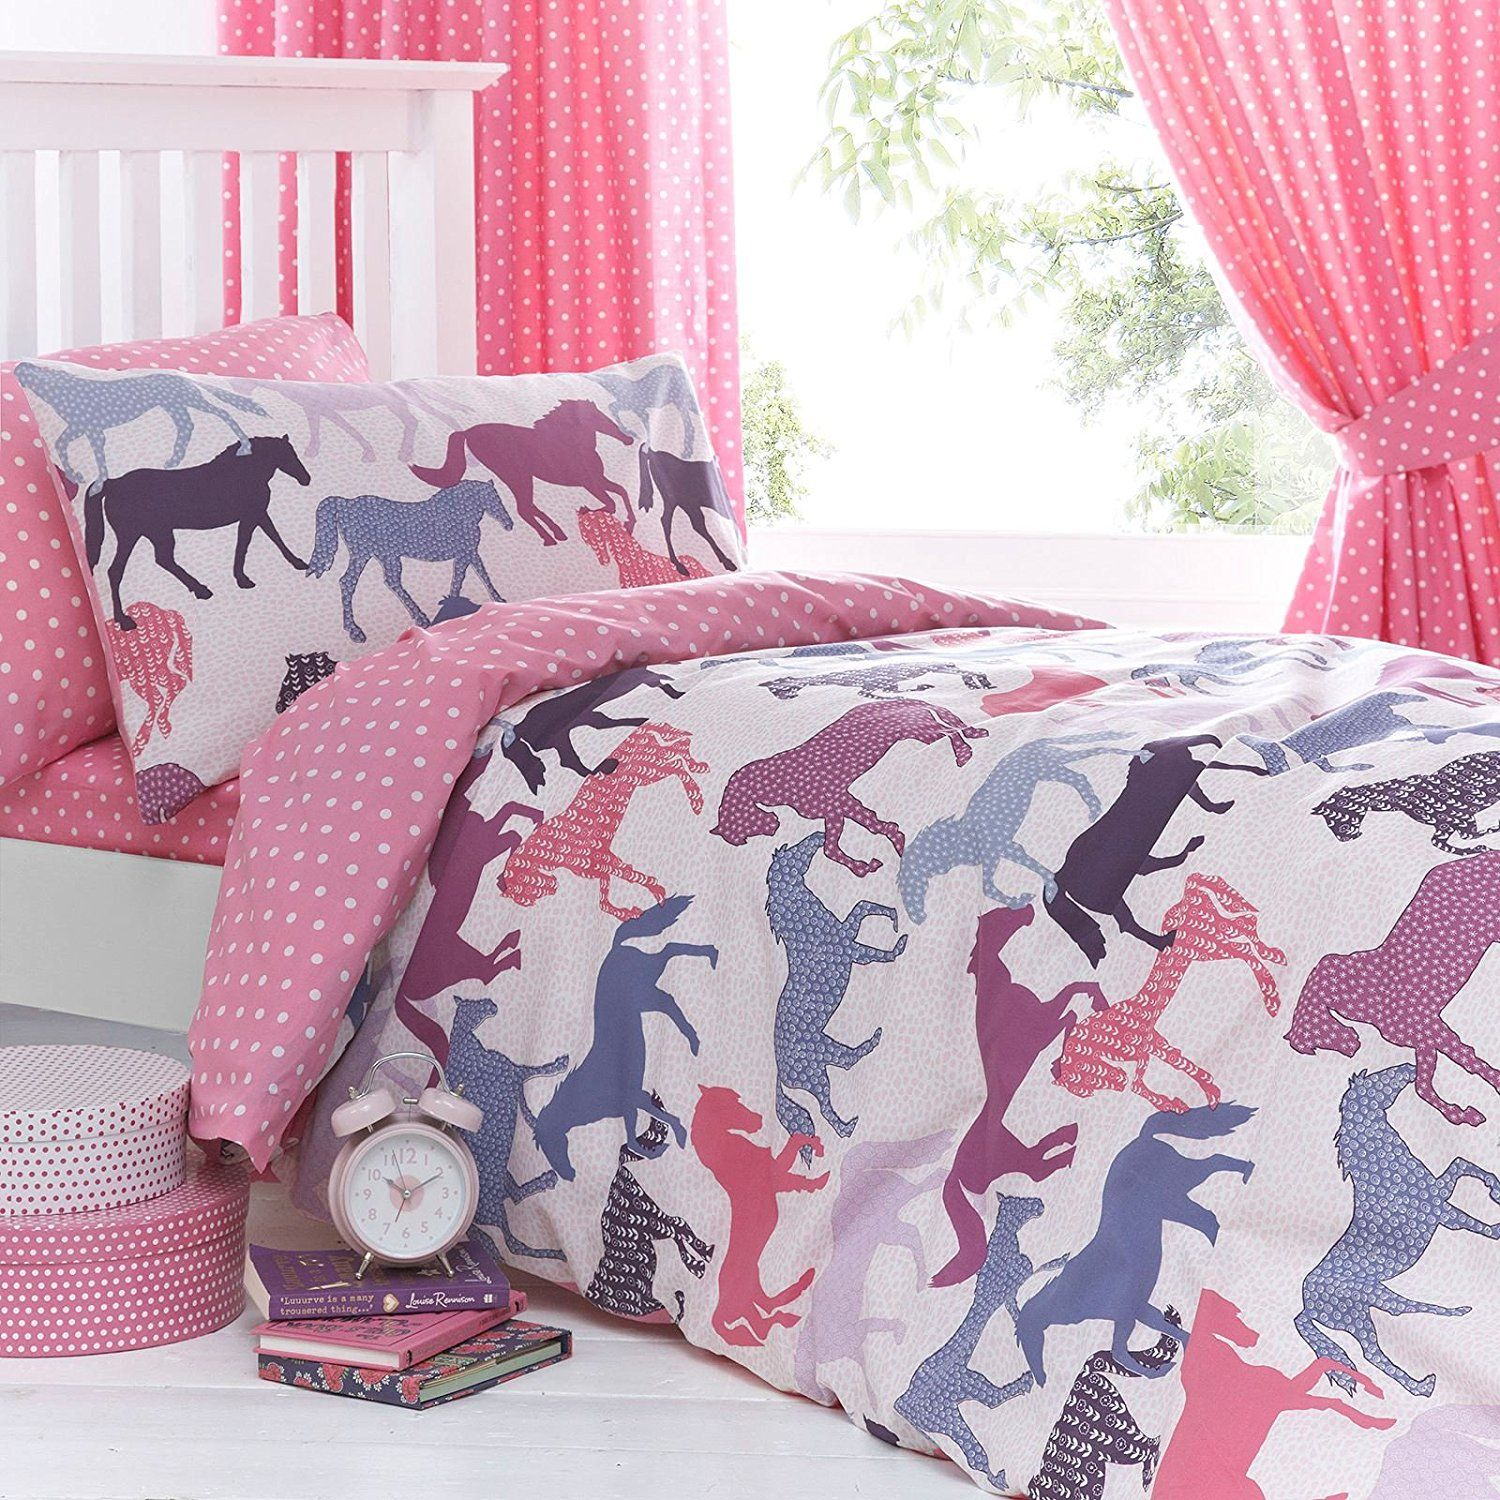 covers baby uk kid kids full themed duvets about cowboy childrens boy duvet s girls bedding details twin canada quilt children bedspreads sets crib nursery cheap comforter for horse western